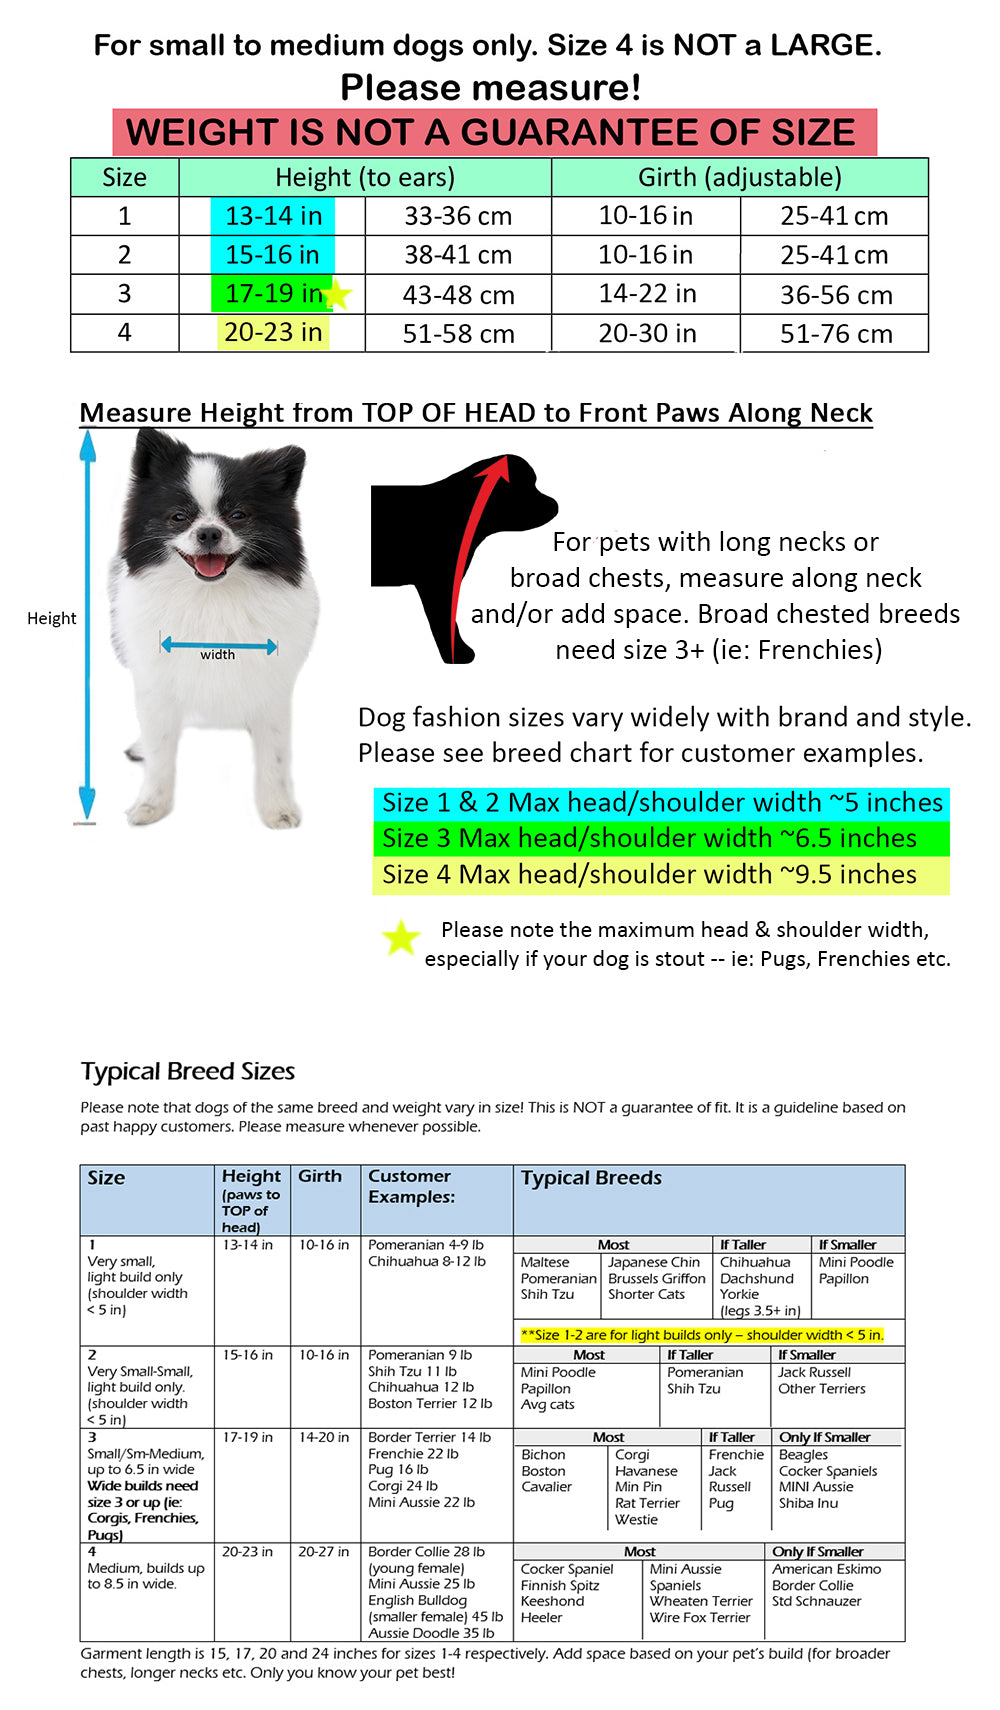 Pandaloon size chart and dog breed list with examples of customer sizes